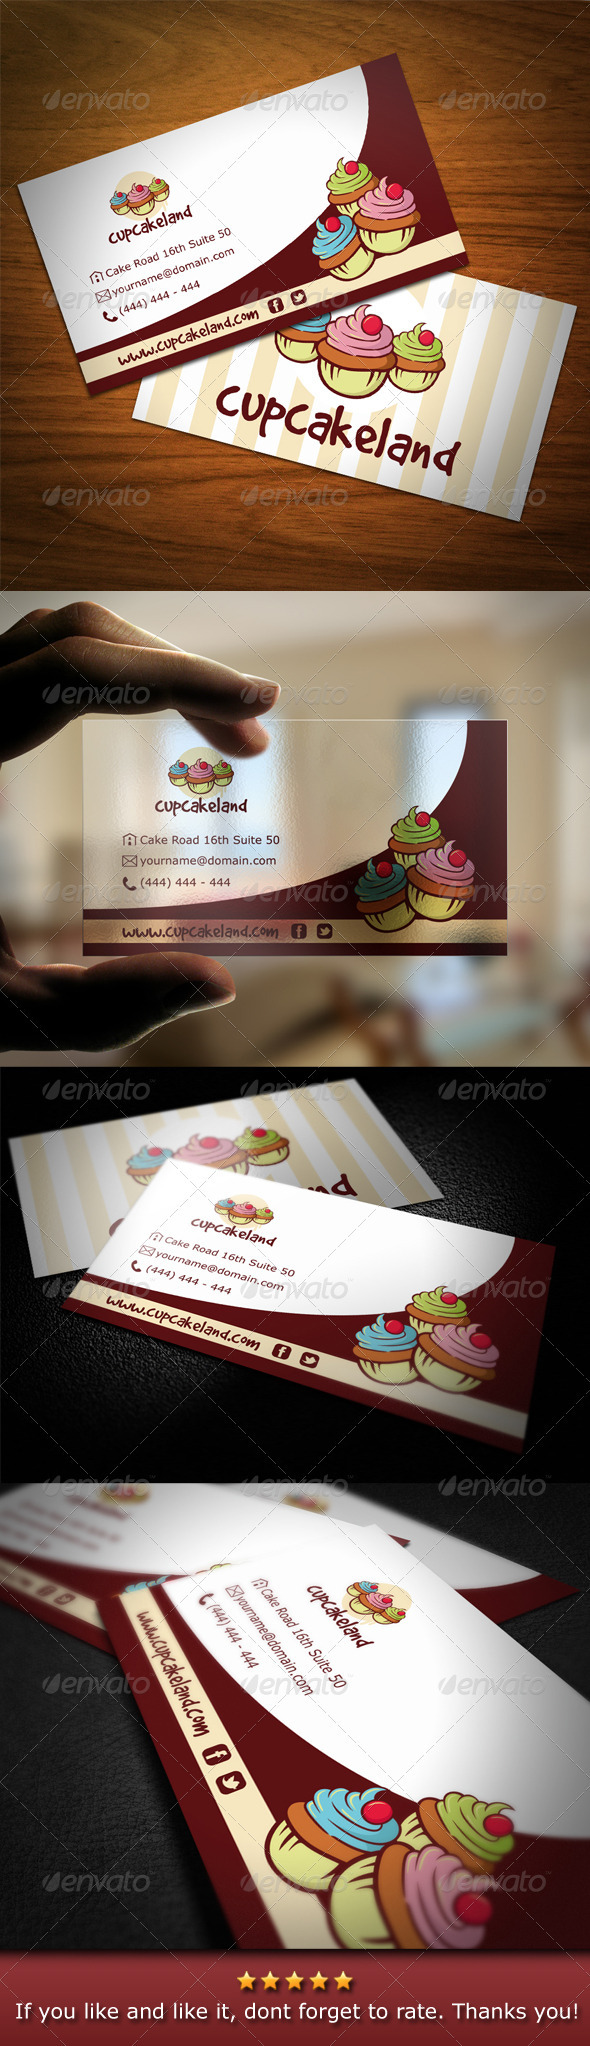 Cupcake Backery Business Card - Industry Specific Business Cards